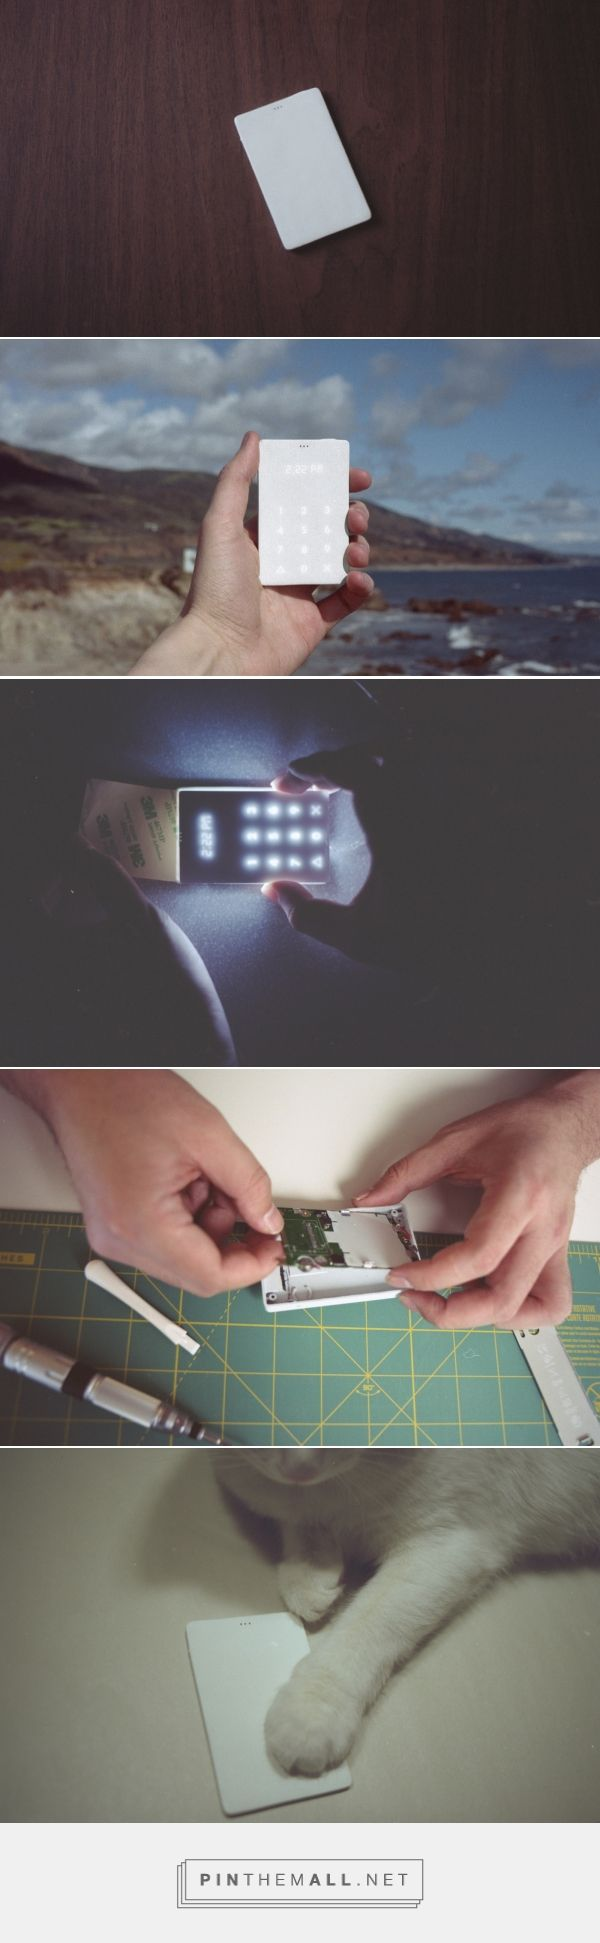 """""""The Light Phone: Designed for Disconnecting"""